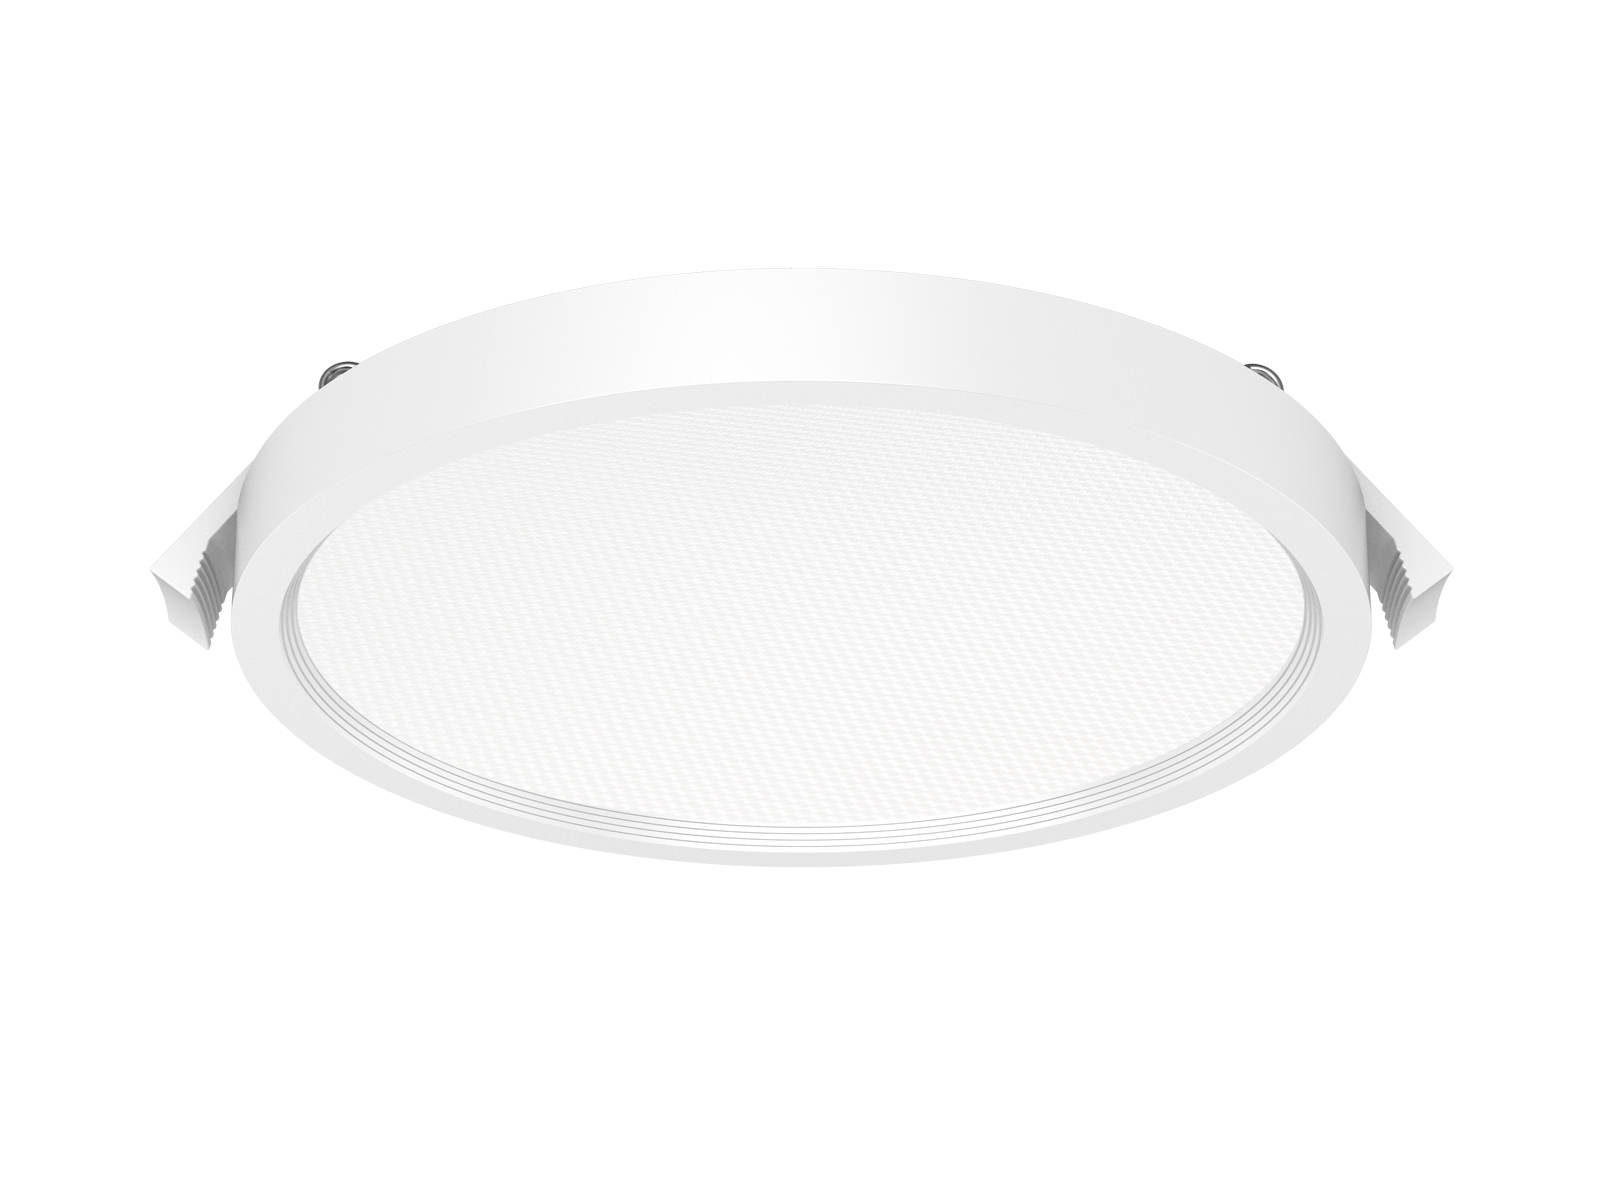 DL109 LED Downlight